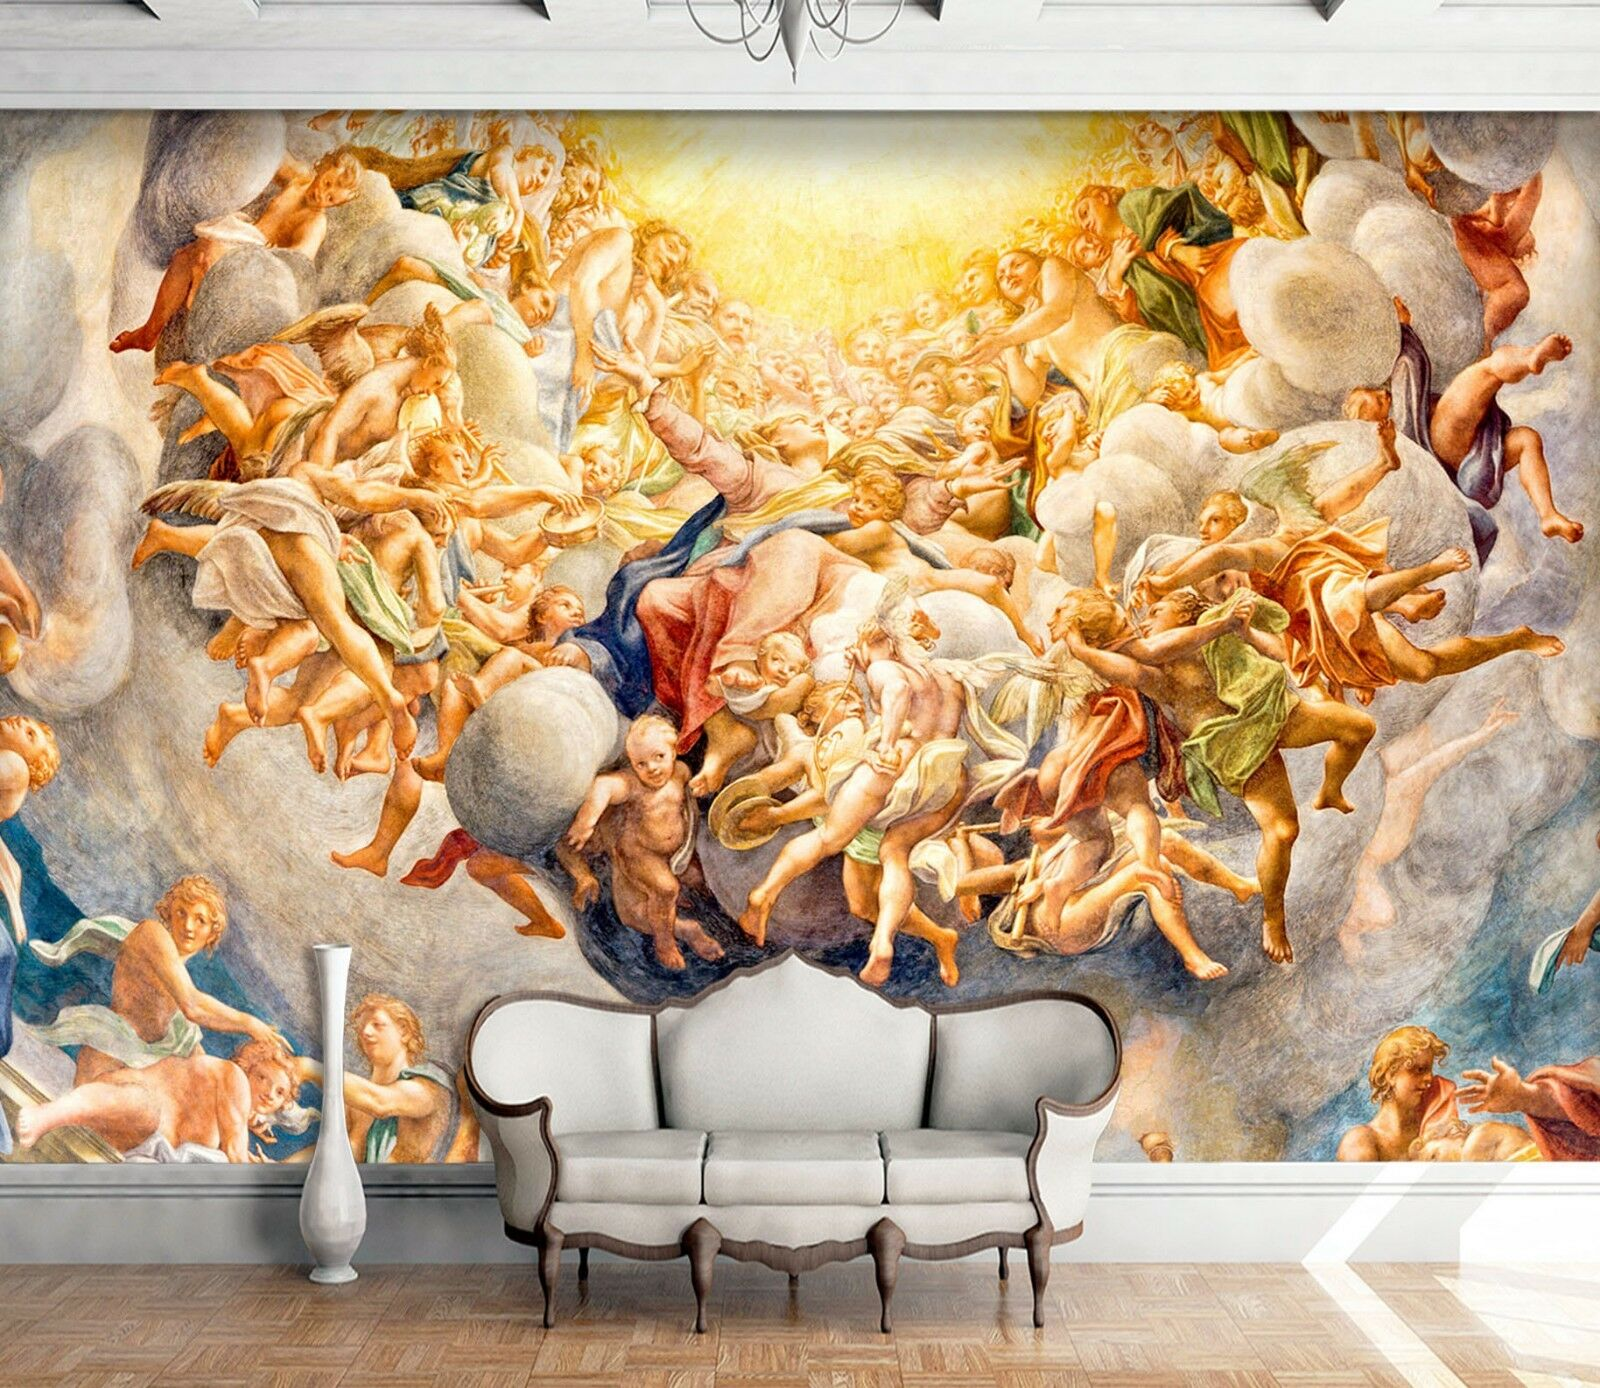 3D Europe Religious Person 5 Wall Paper Wall Print Decal Wall Deco Indoor Murals